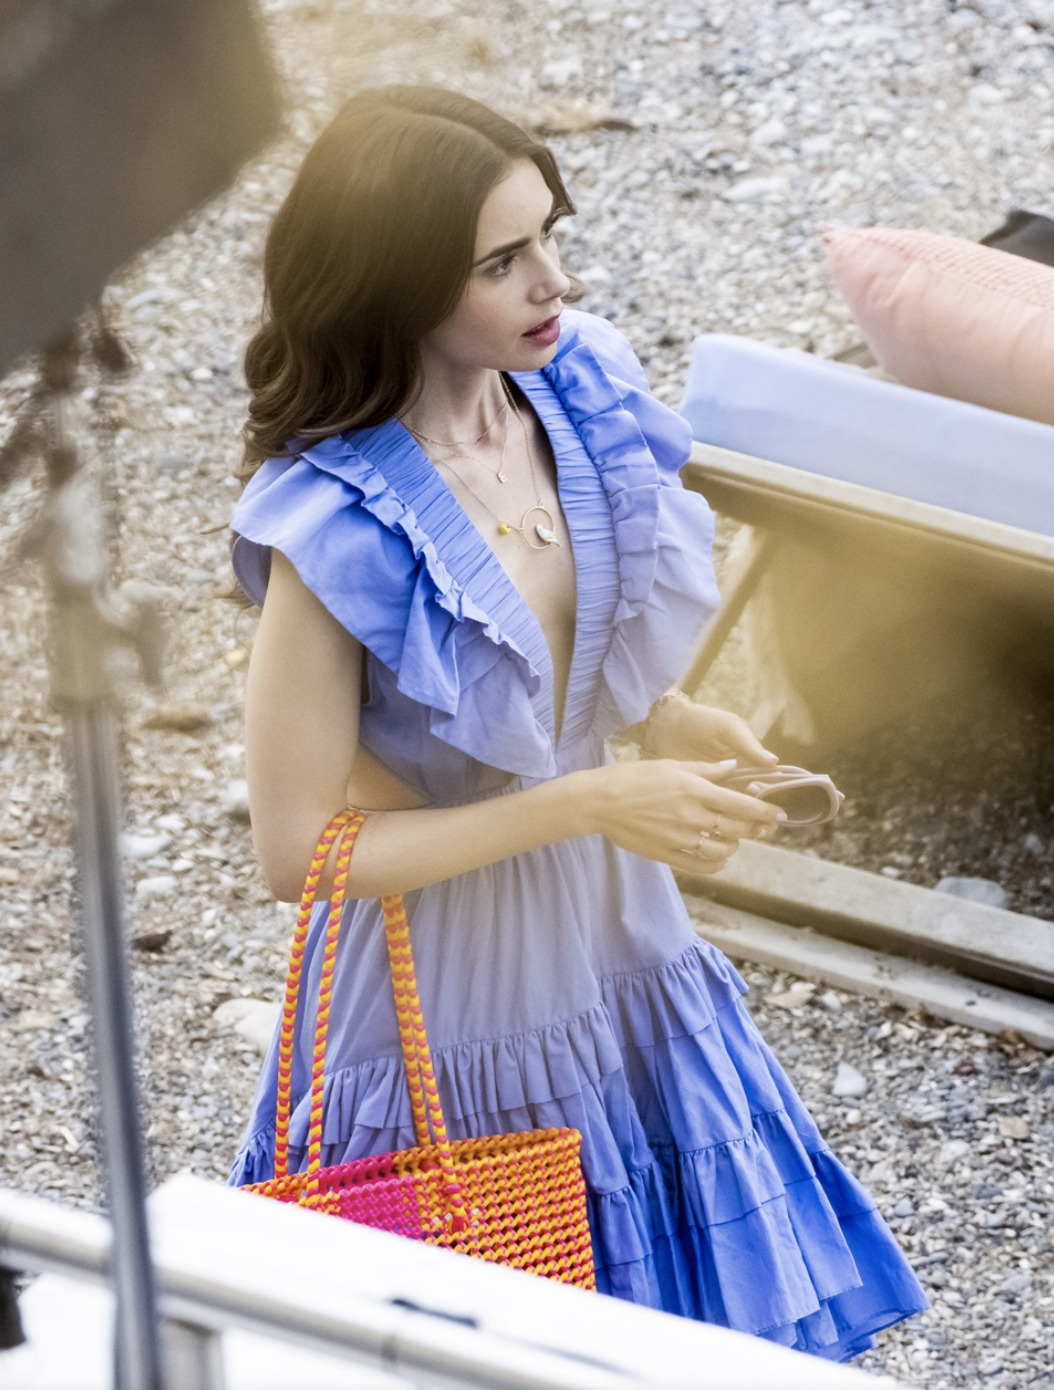 Lily Collins in Emily in Paris - neomag.